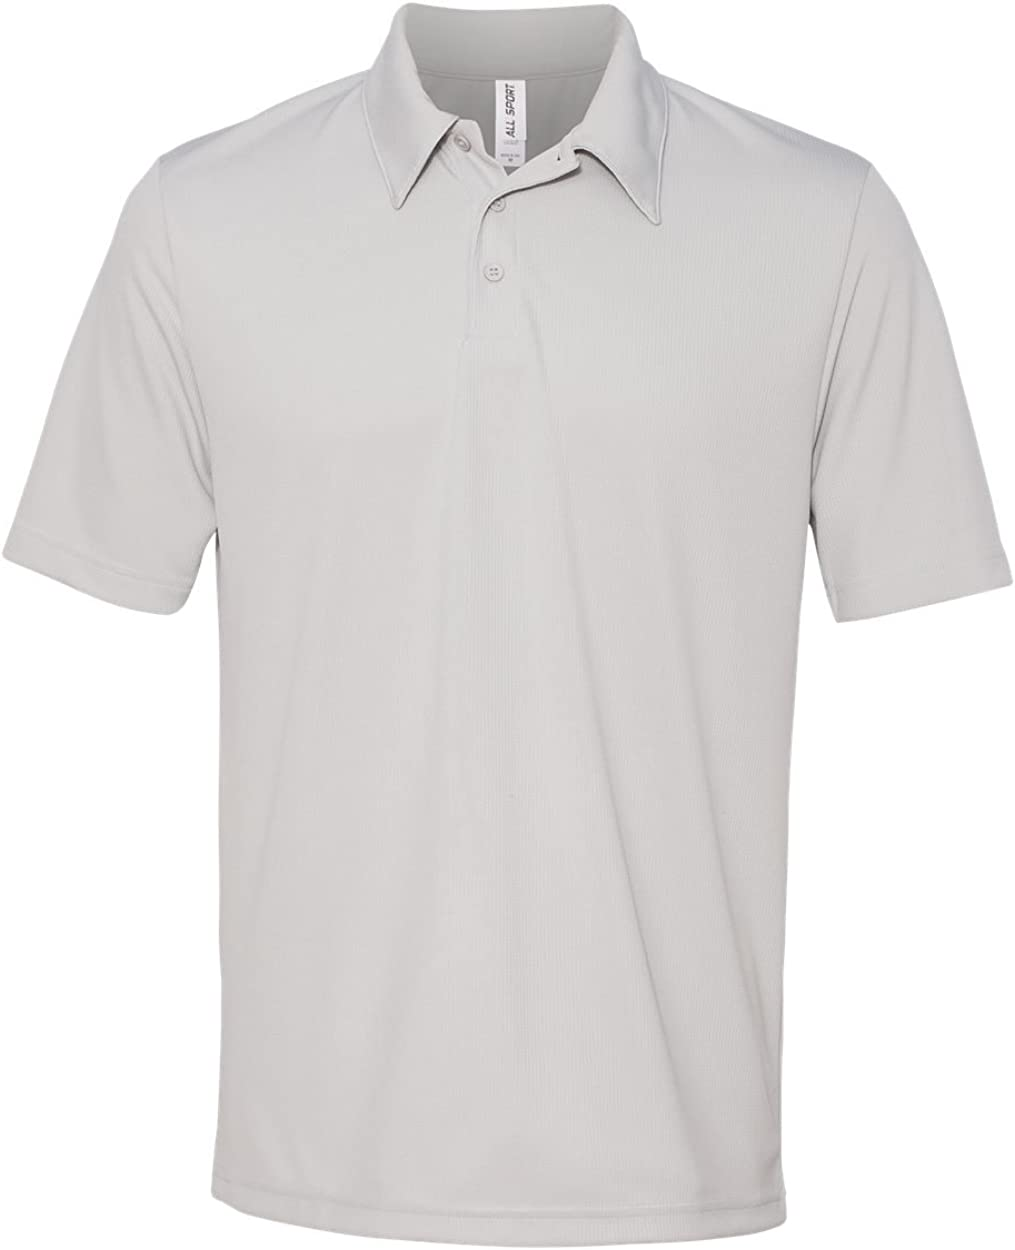 ALO MENS S//S MSH PRFMNCE POLO S SPORT SILVER